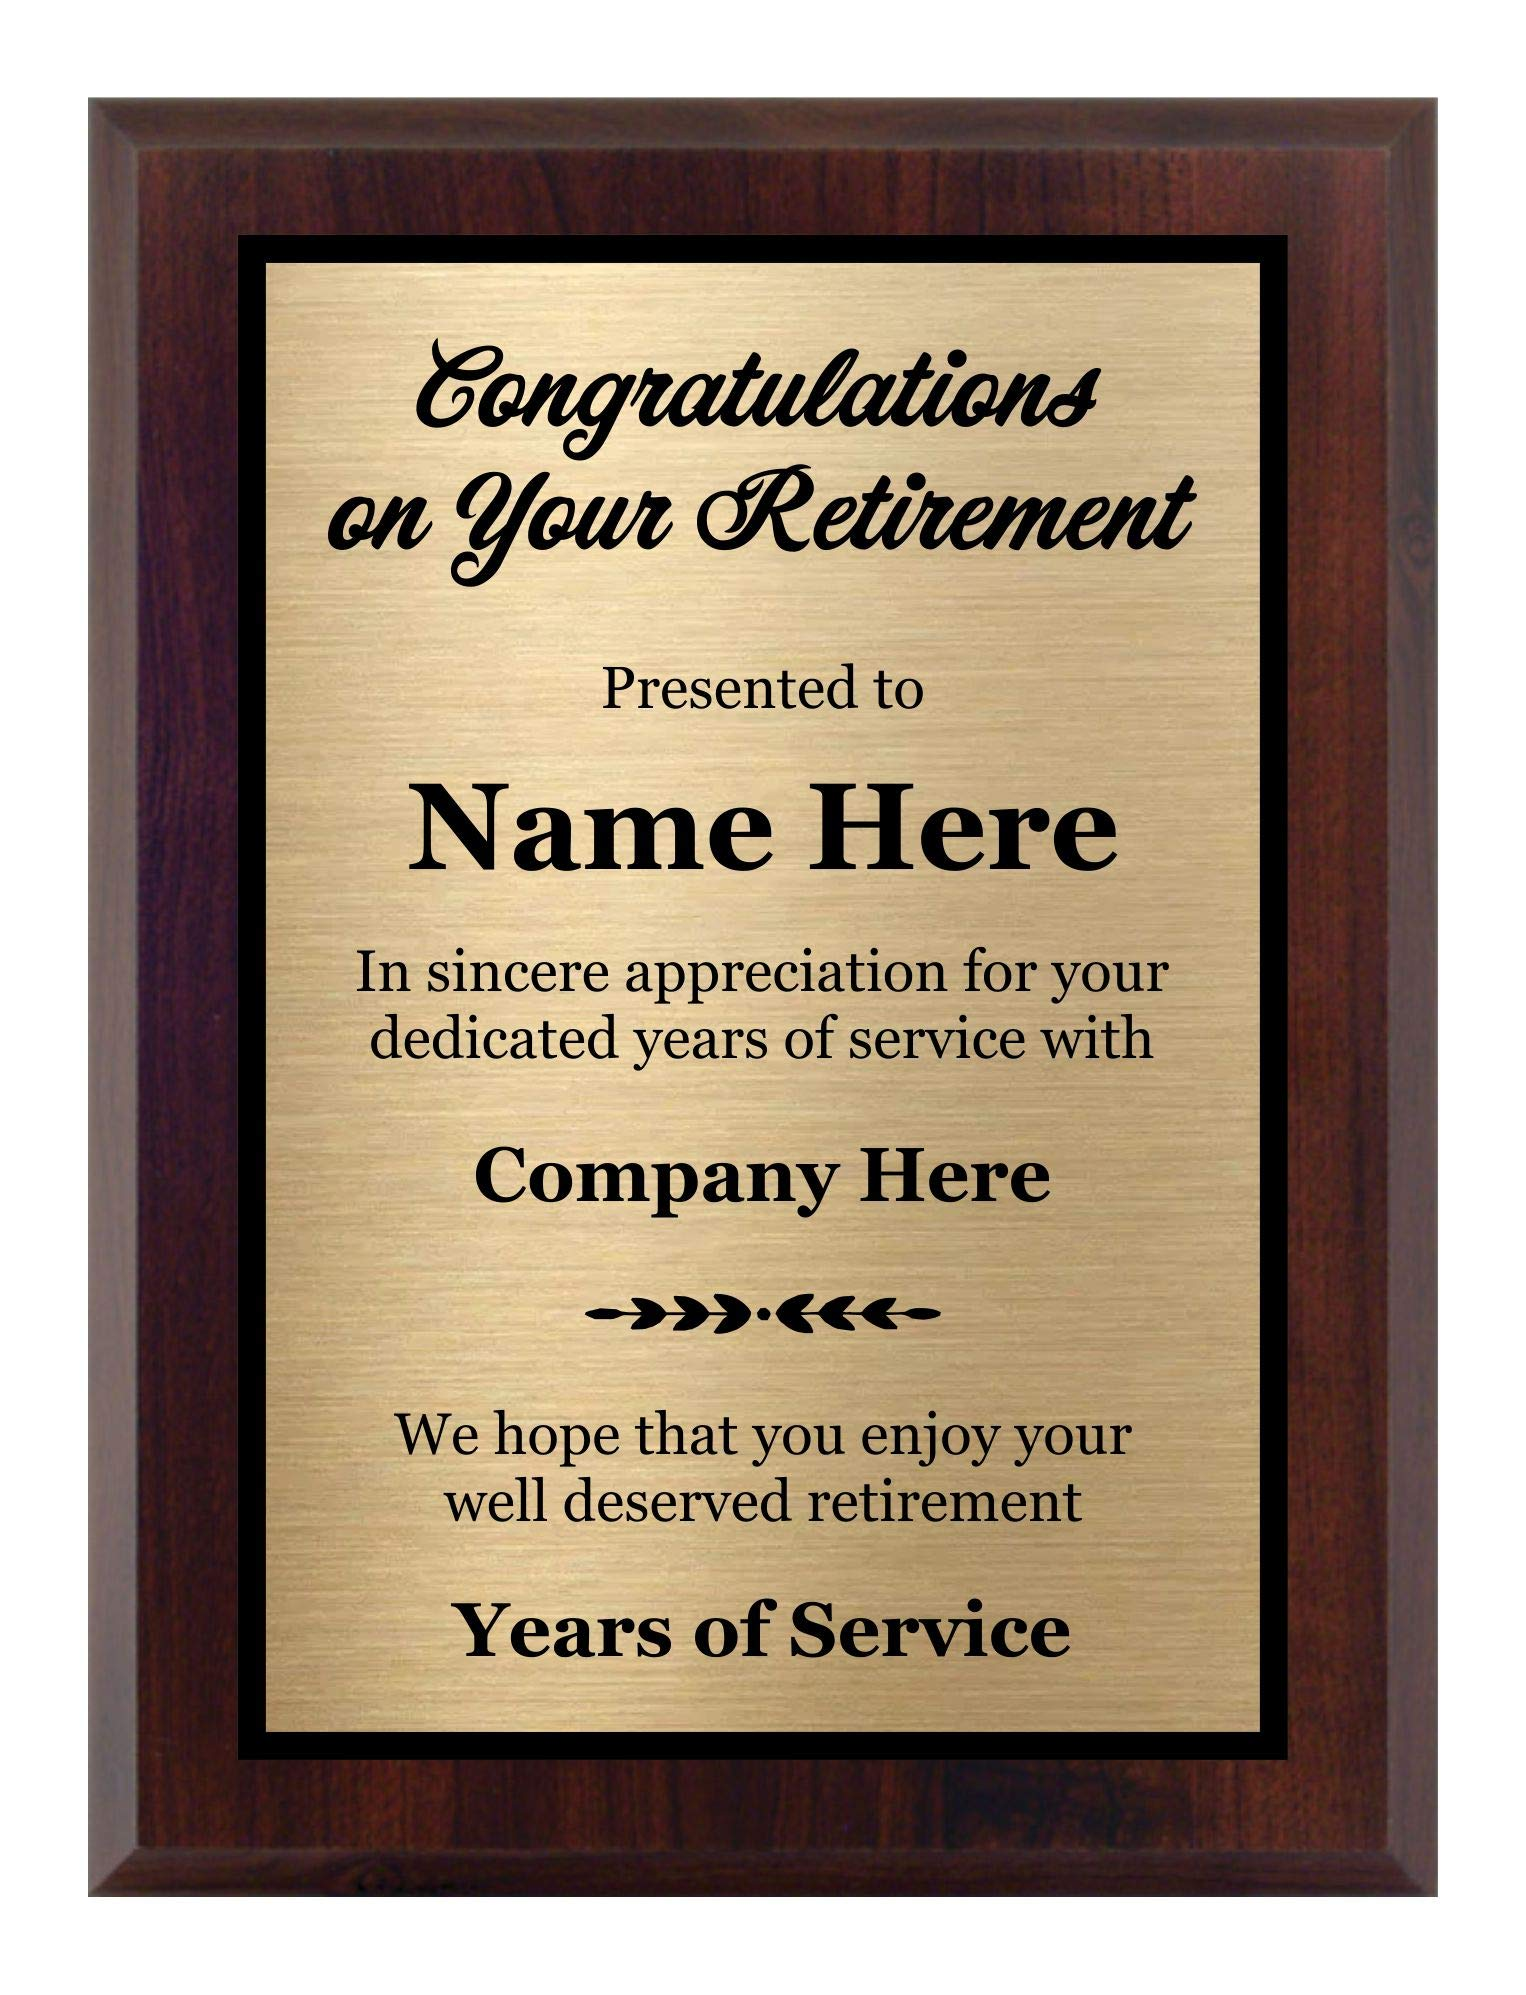 Customized Retirement Plaque 8x10, Personalized Gift for Co-Worker, Award for Women and Men. Customize Now! by Awards4U